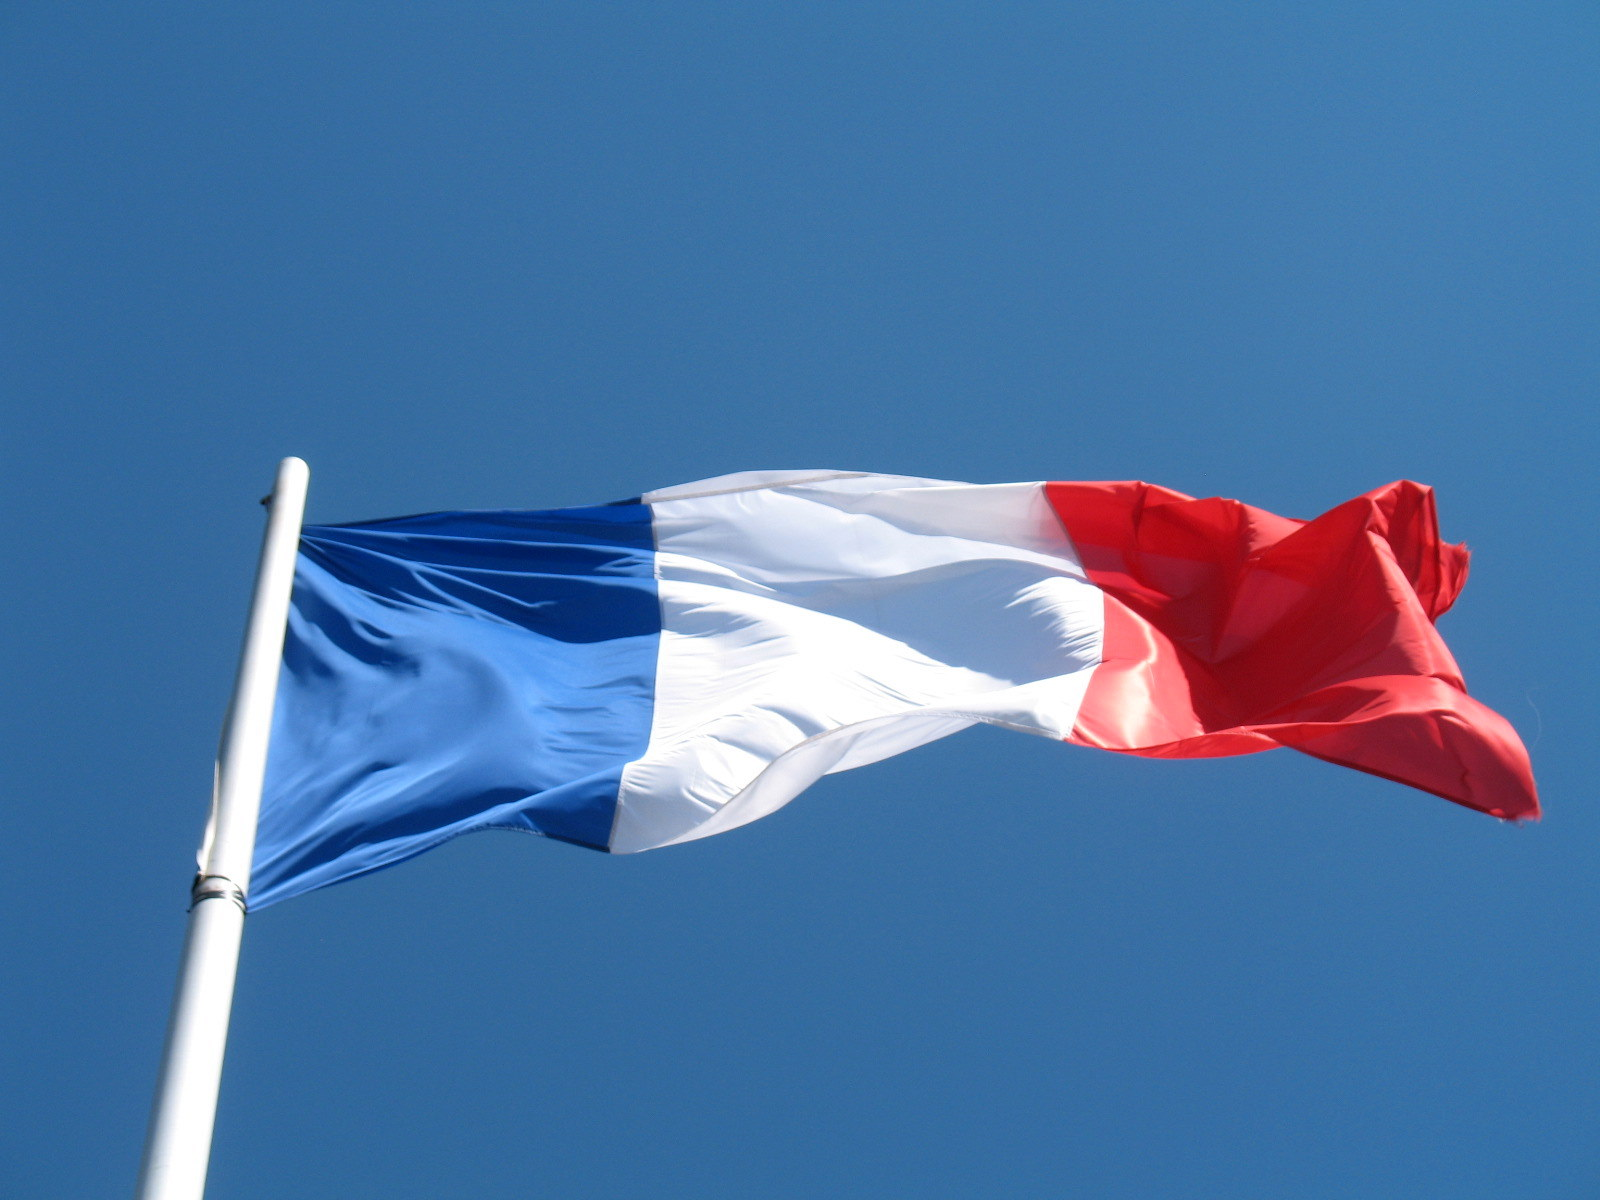 Image of the French Flag on a Flag Pole